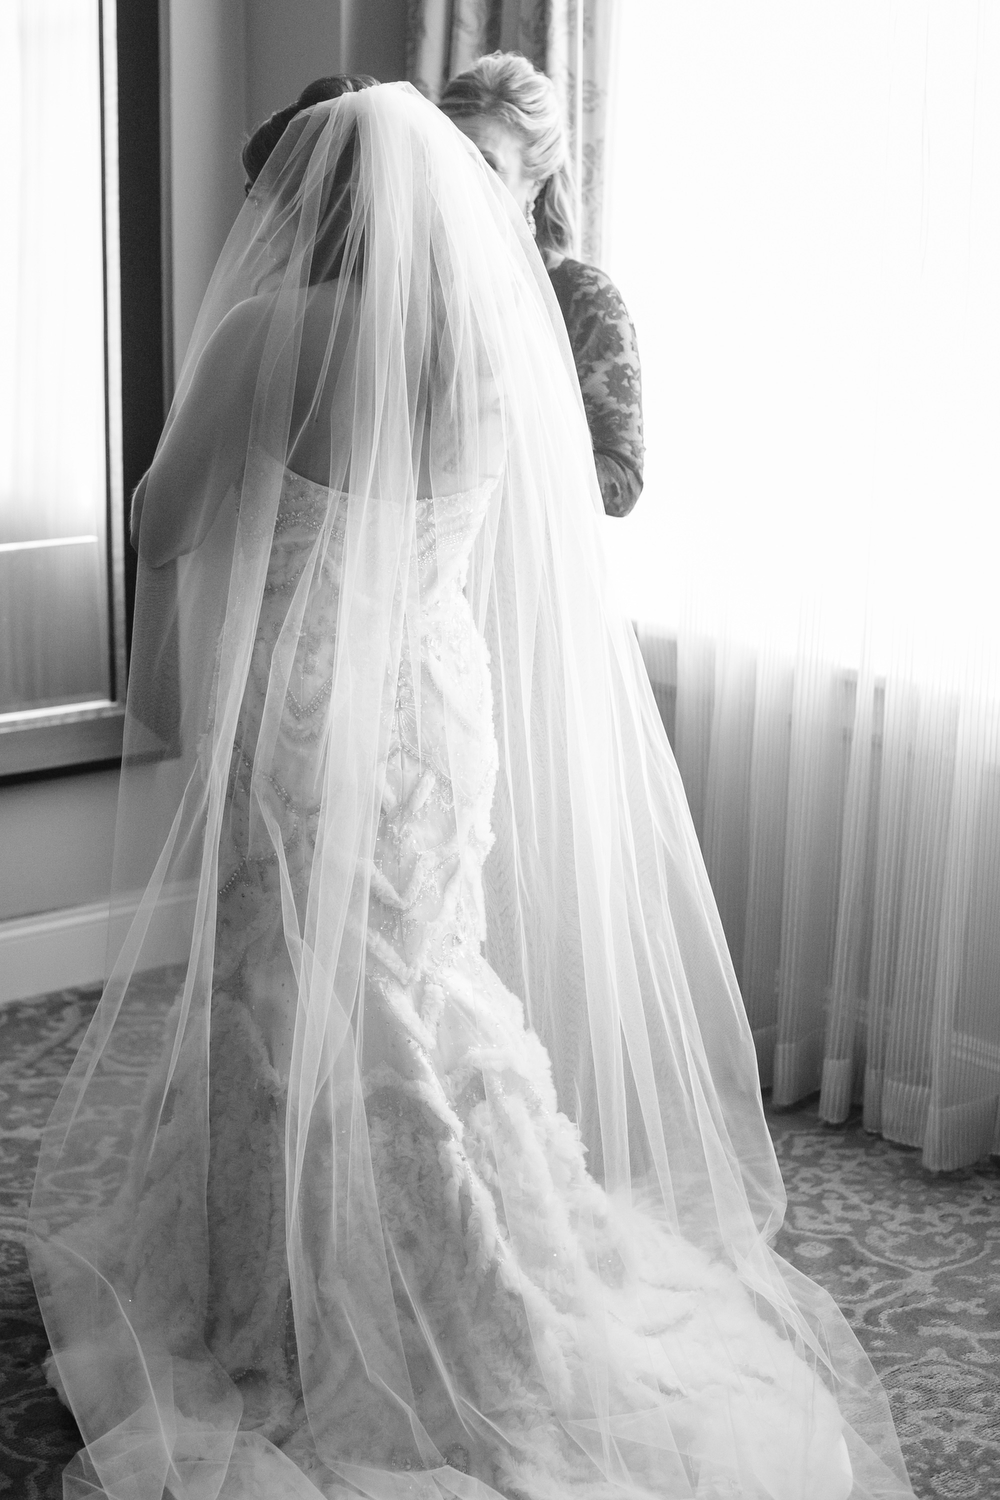 Intimate shot with mother and daughter | Getting Dressed | How to transform an open ballroom with stunning decor | Sapphire Events | Greer G Photography | Board of Trade | White and Gold Wedding | Winter Wedding Inspiration